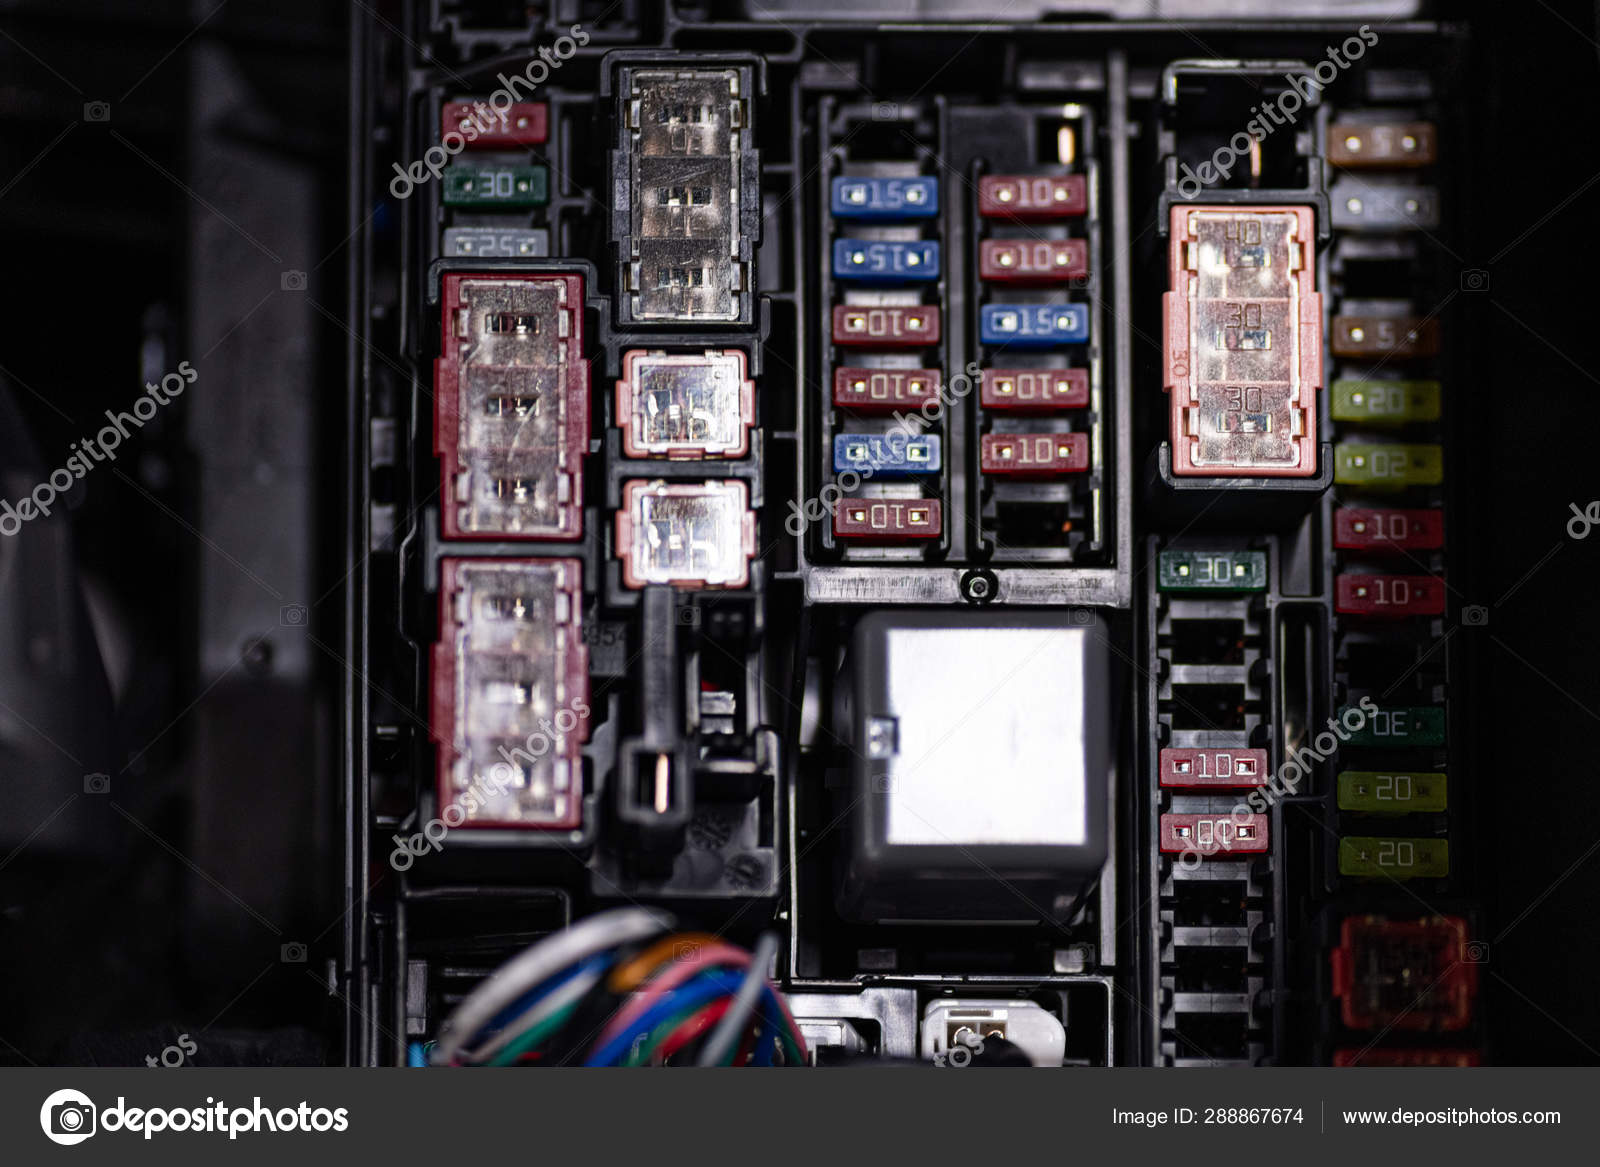 car fuse box purpose car fuse box with fuses and relays     stock photo    djedzura 288867674  car fuse box with fuses and relays